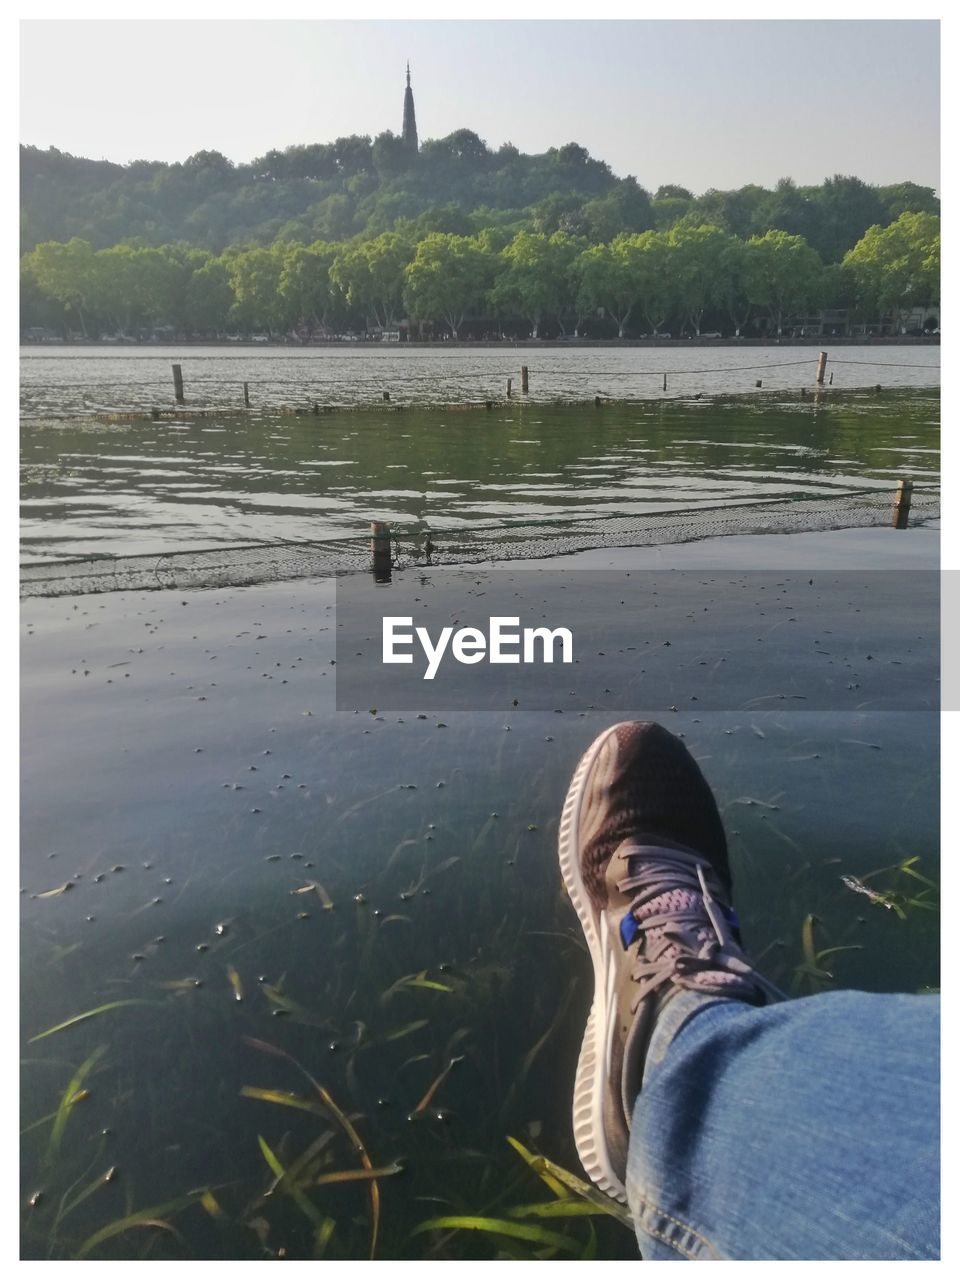 water, low section, shoe, human body part, human leg, real people, nature, body part, lake, day, auto post production filter, transfer print, one person, personal perspective, lifestyles, plant, relaxation, leisure activity, outdoors, jeans